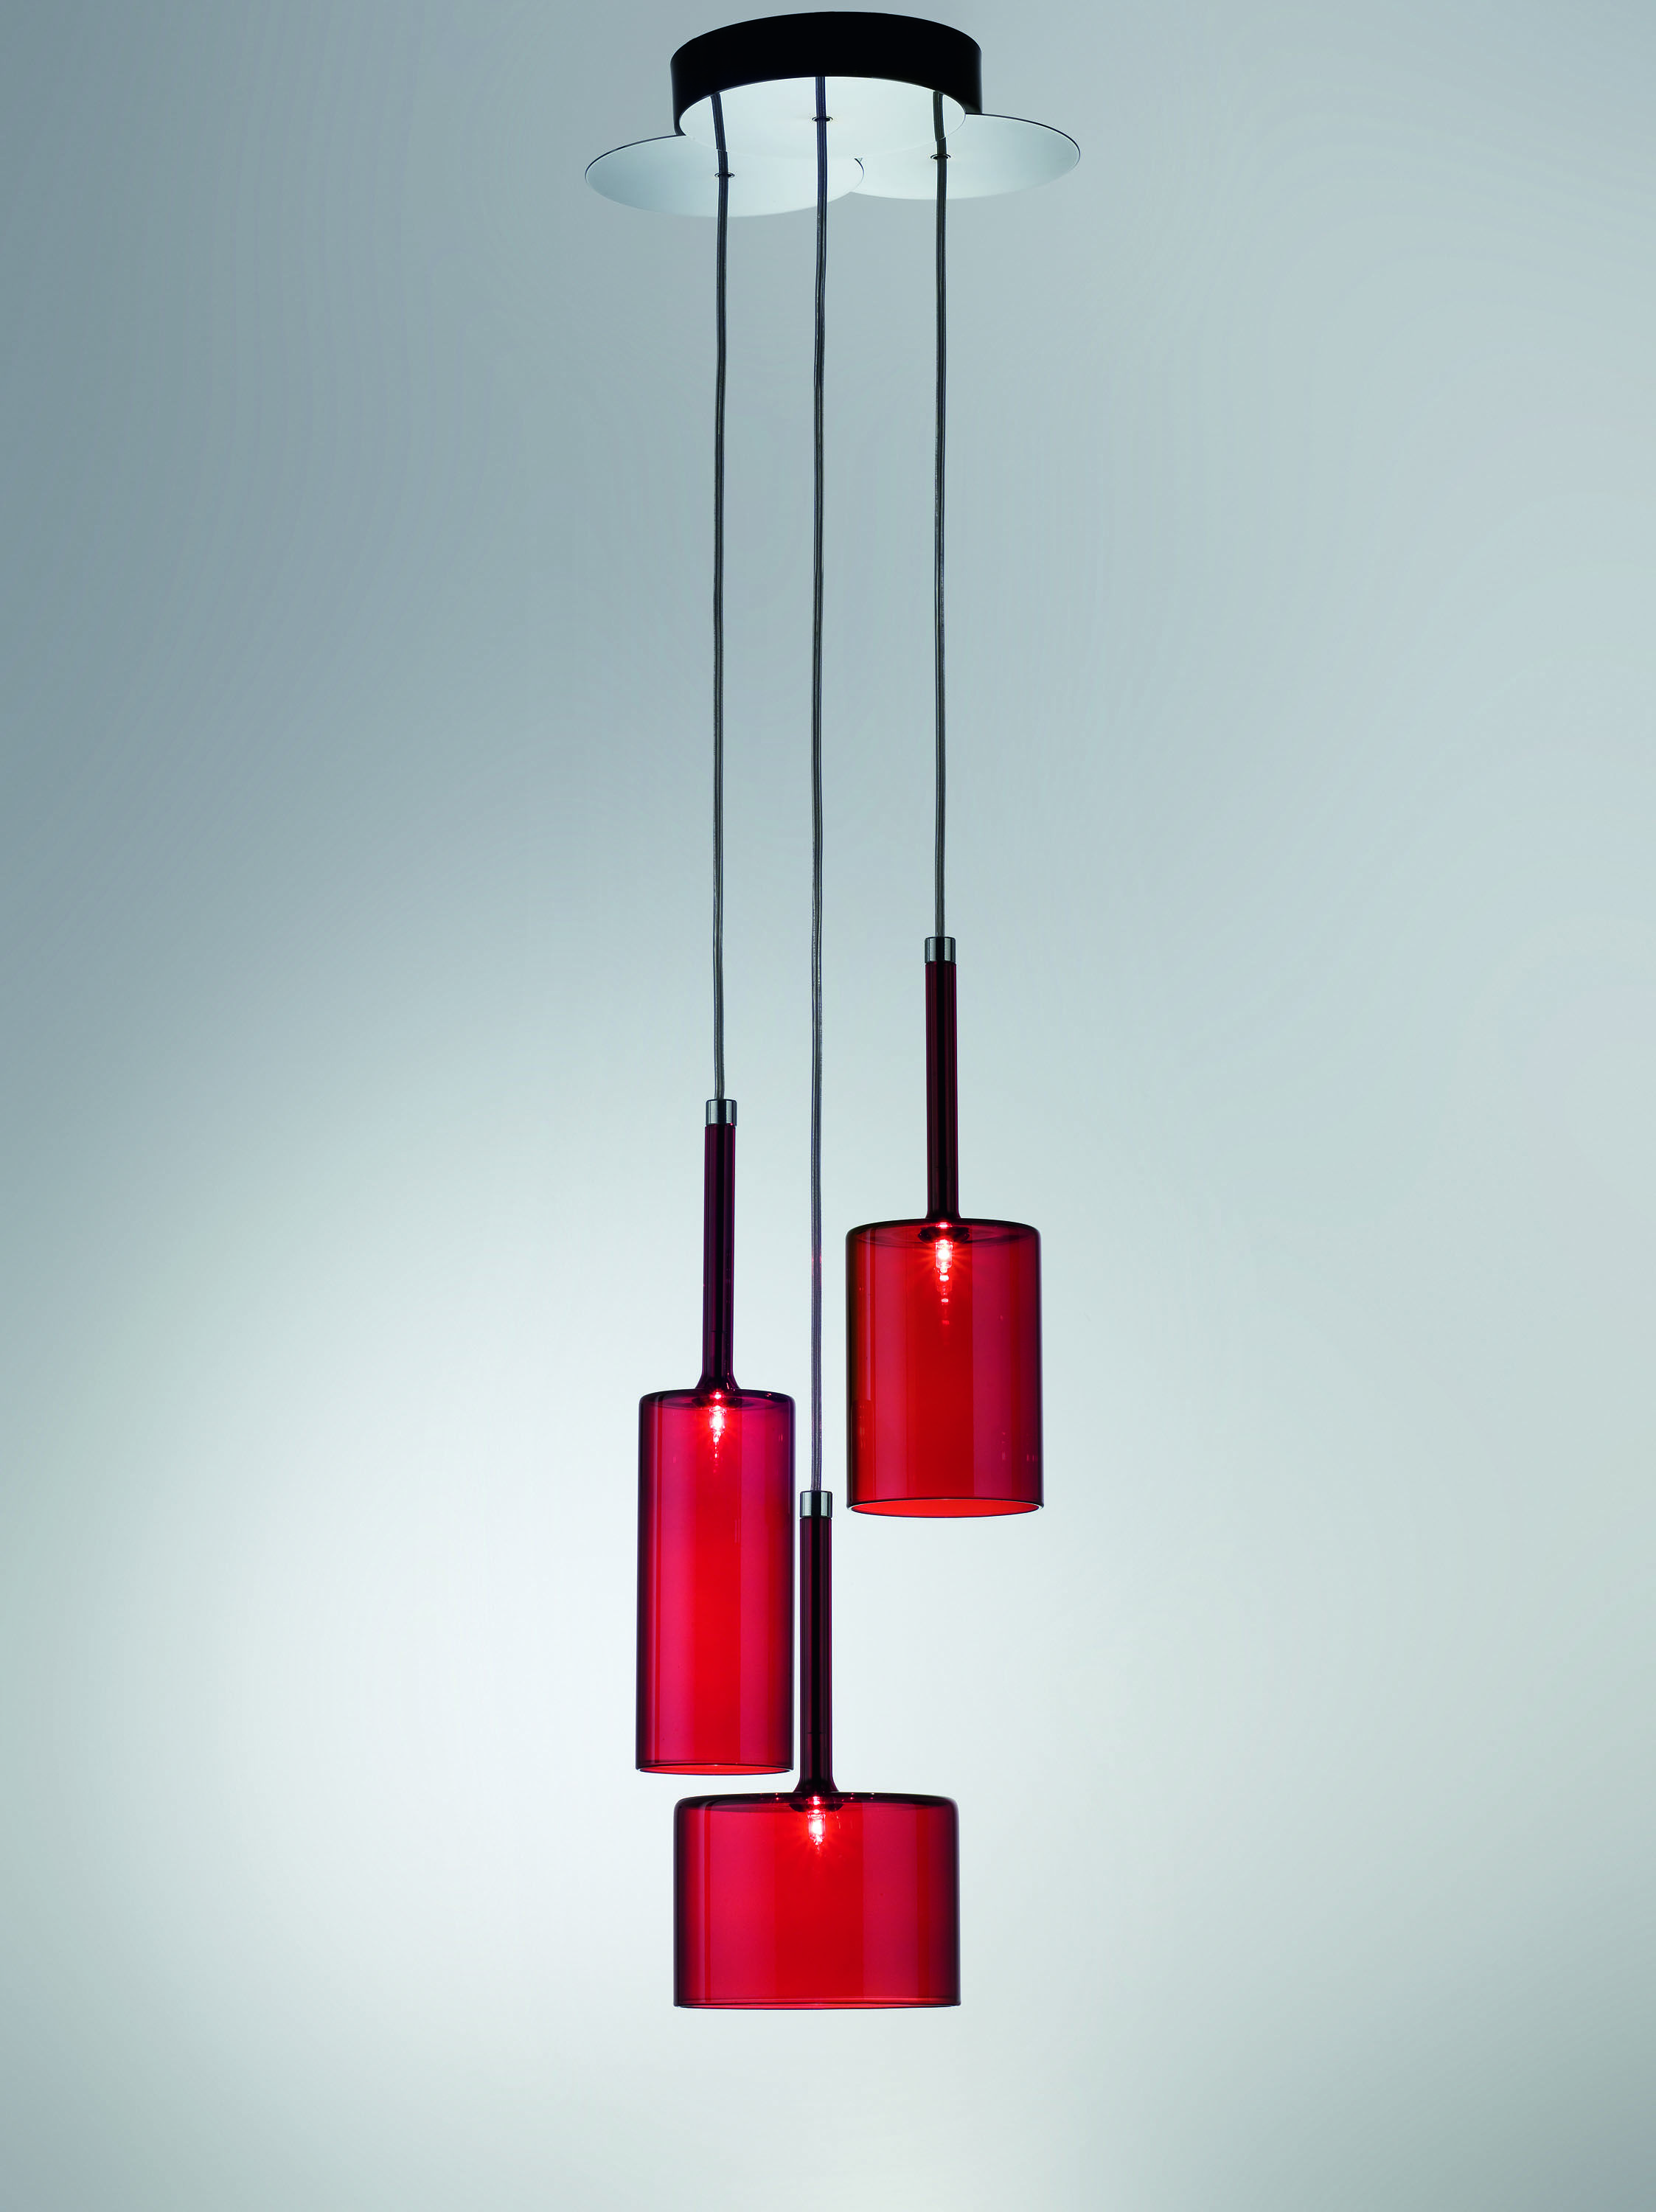 Pendant Lamp Available In Several Colours Crystal Red Grey And Bronze Halo Or Led Light Source The Diffusers Are Glass Pendant Lamp Lamp Red Pendant Light